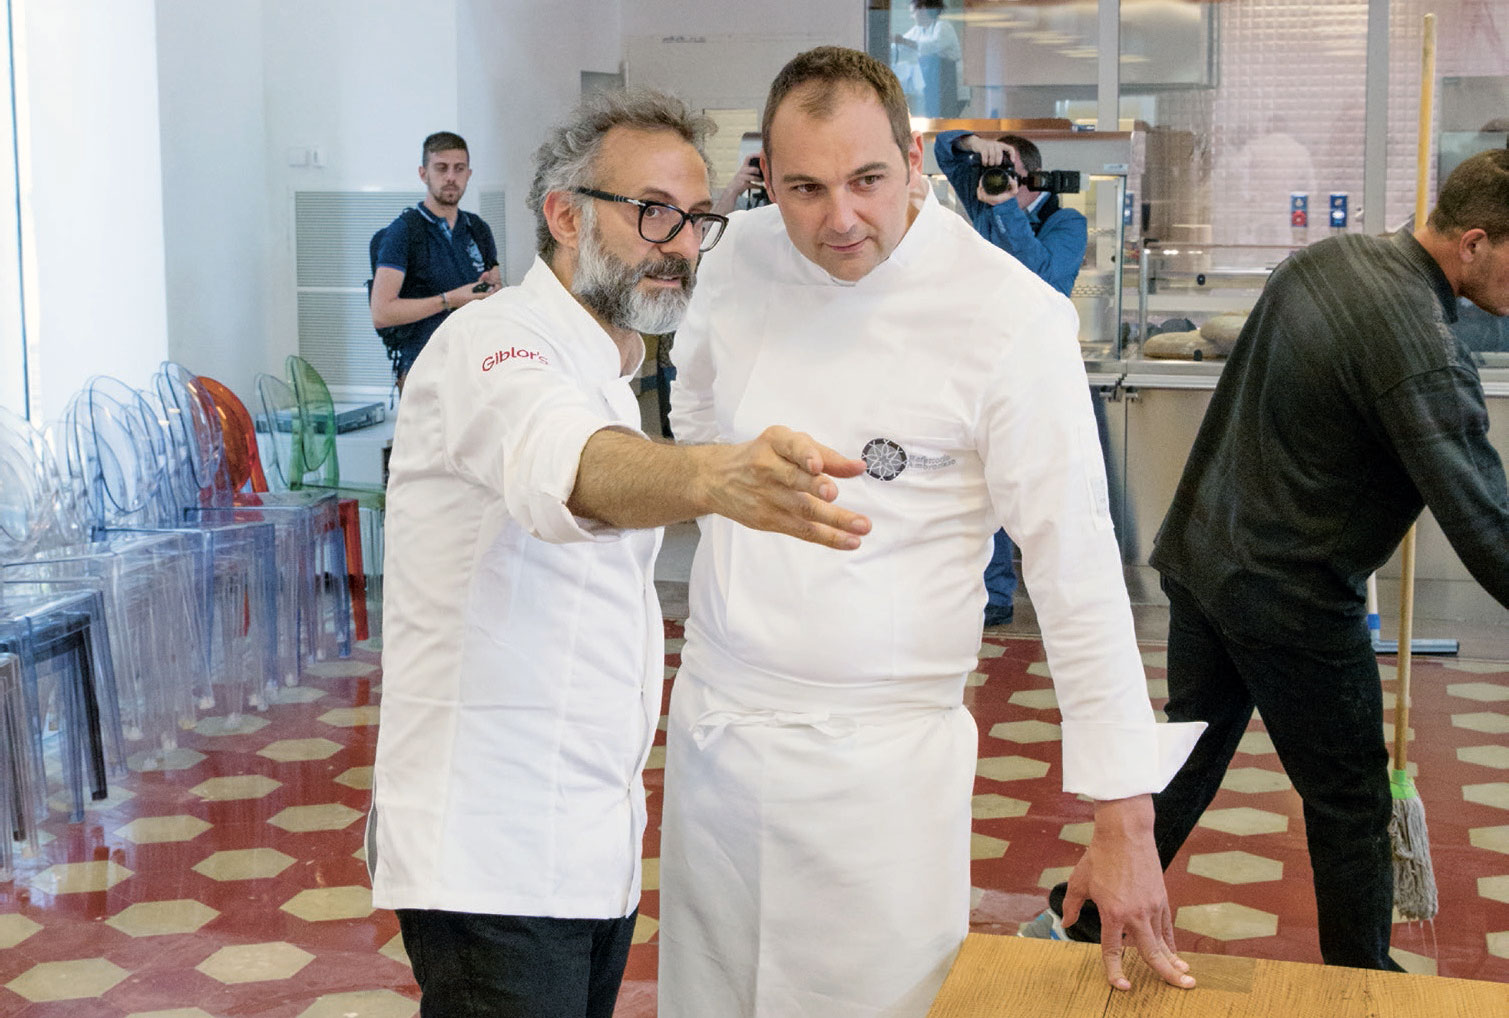 Daniel Humm and Massimo Bottura, as featured in Bread is Gold